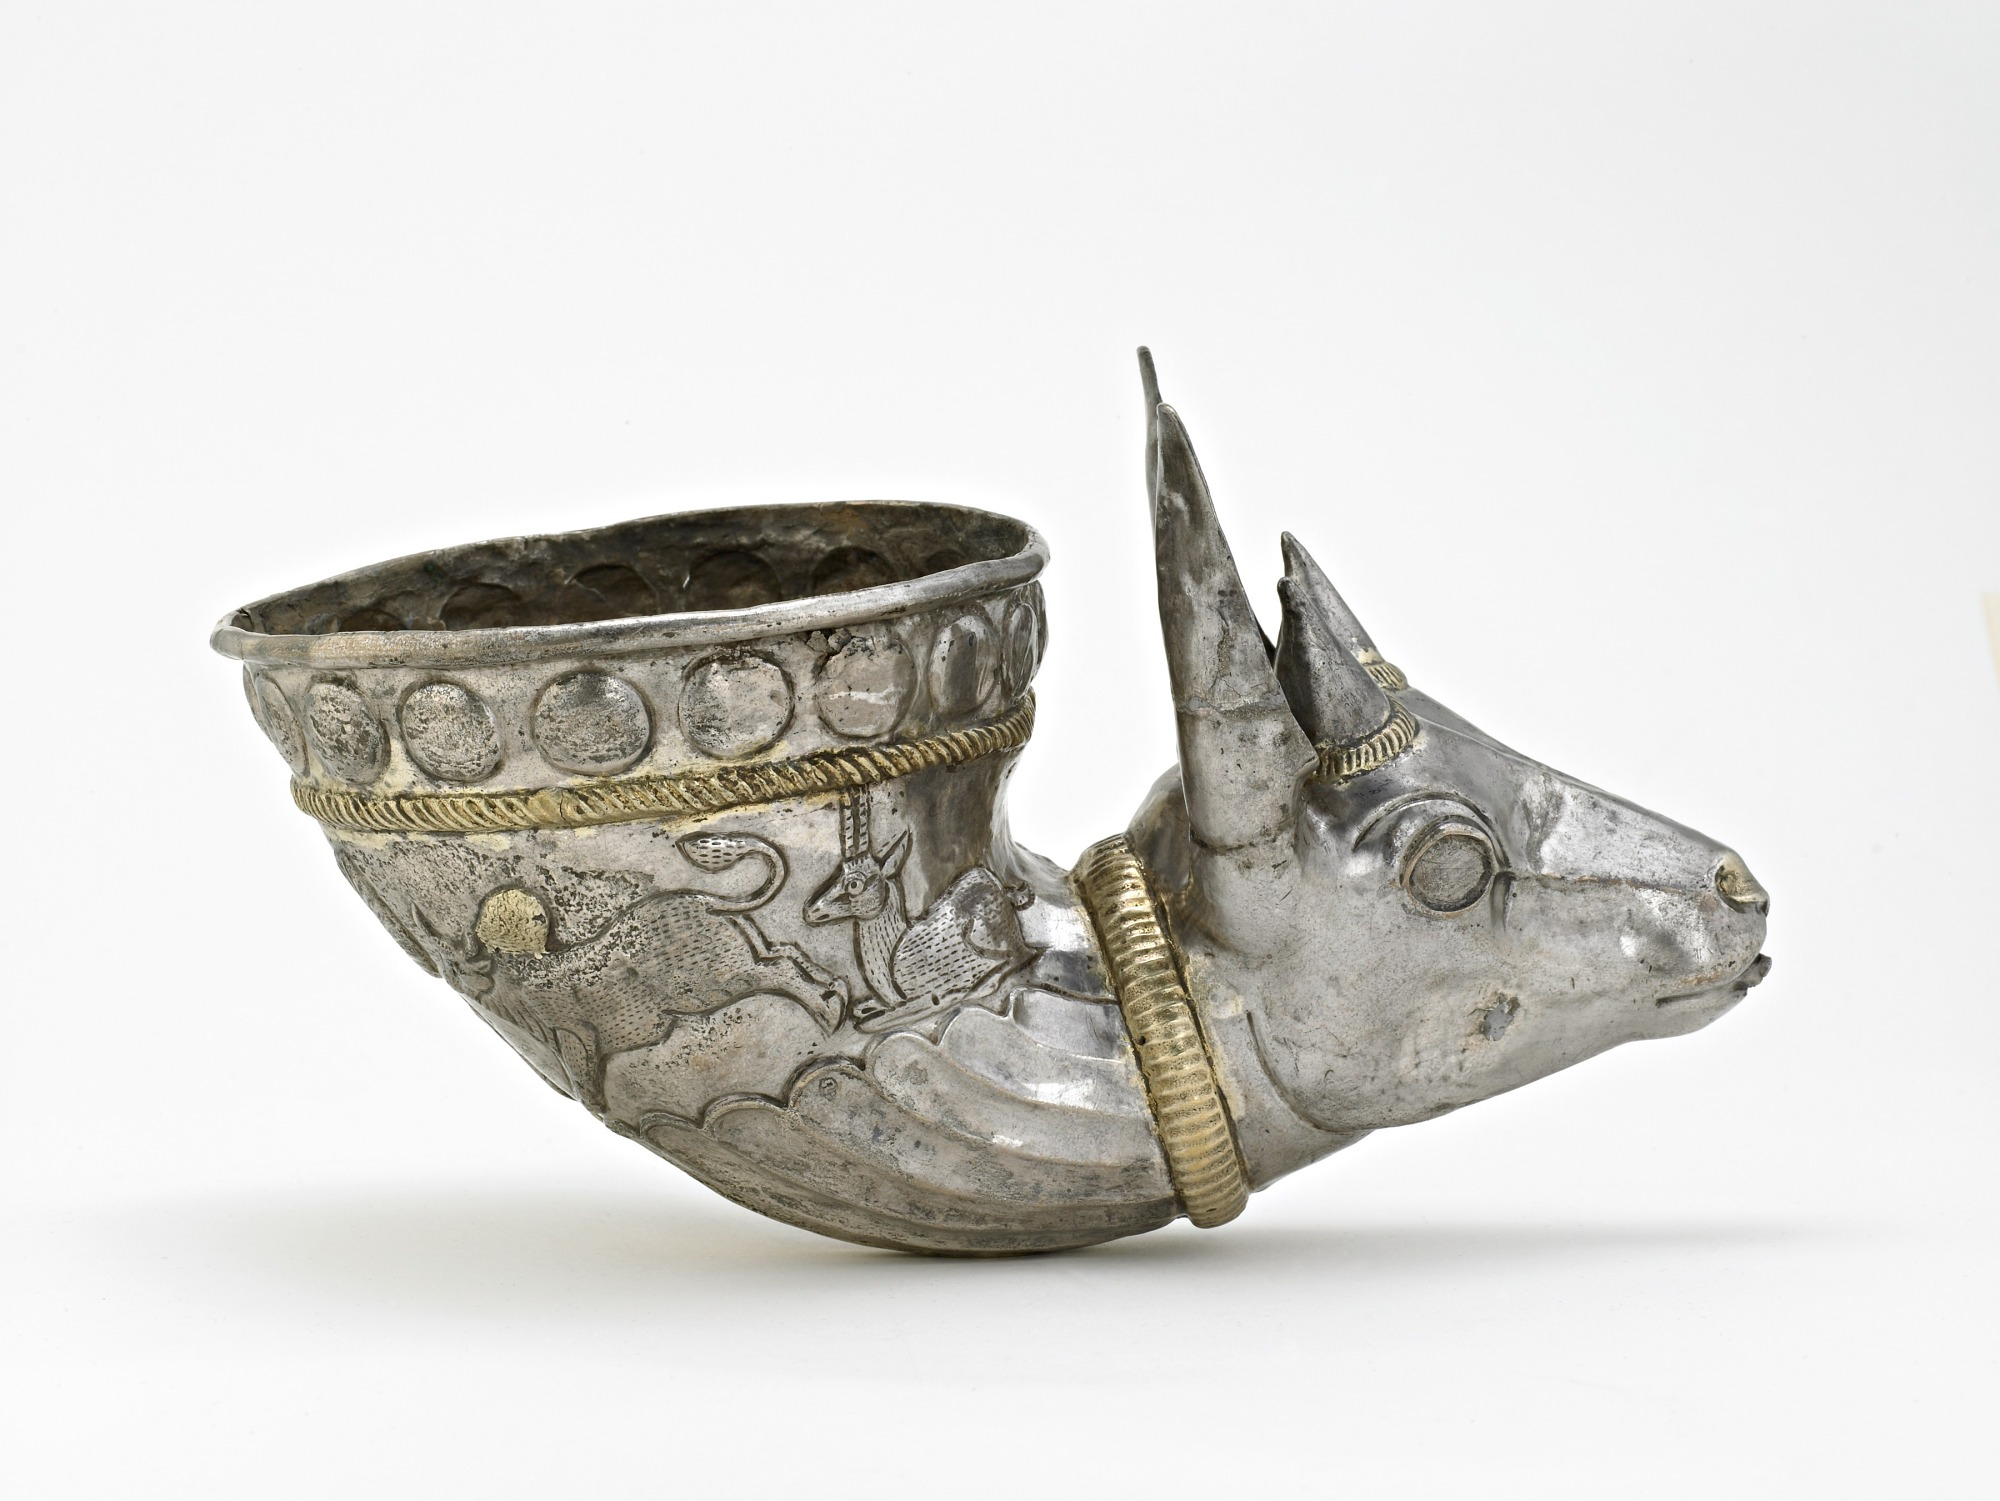 : Spouted vessel with gazelle protome